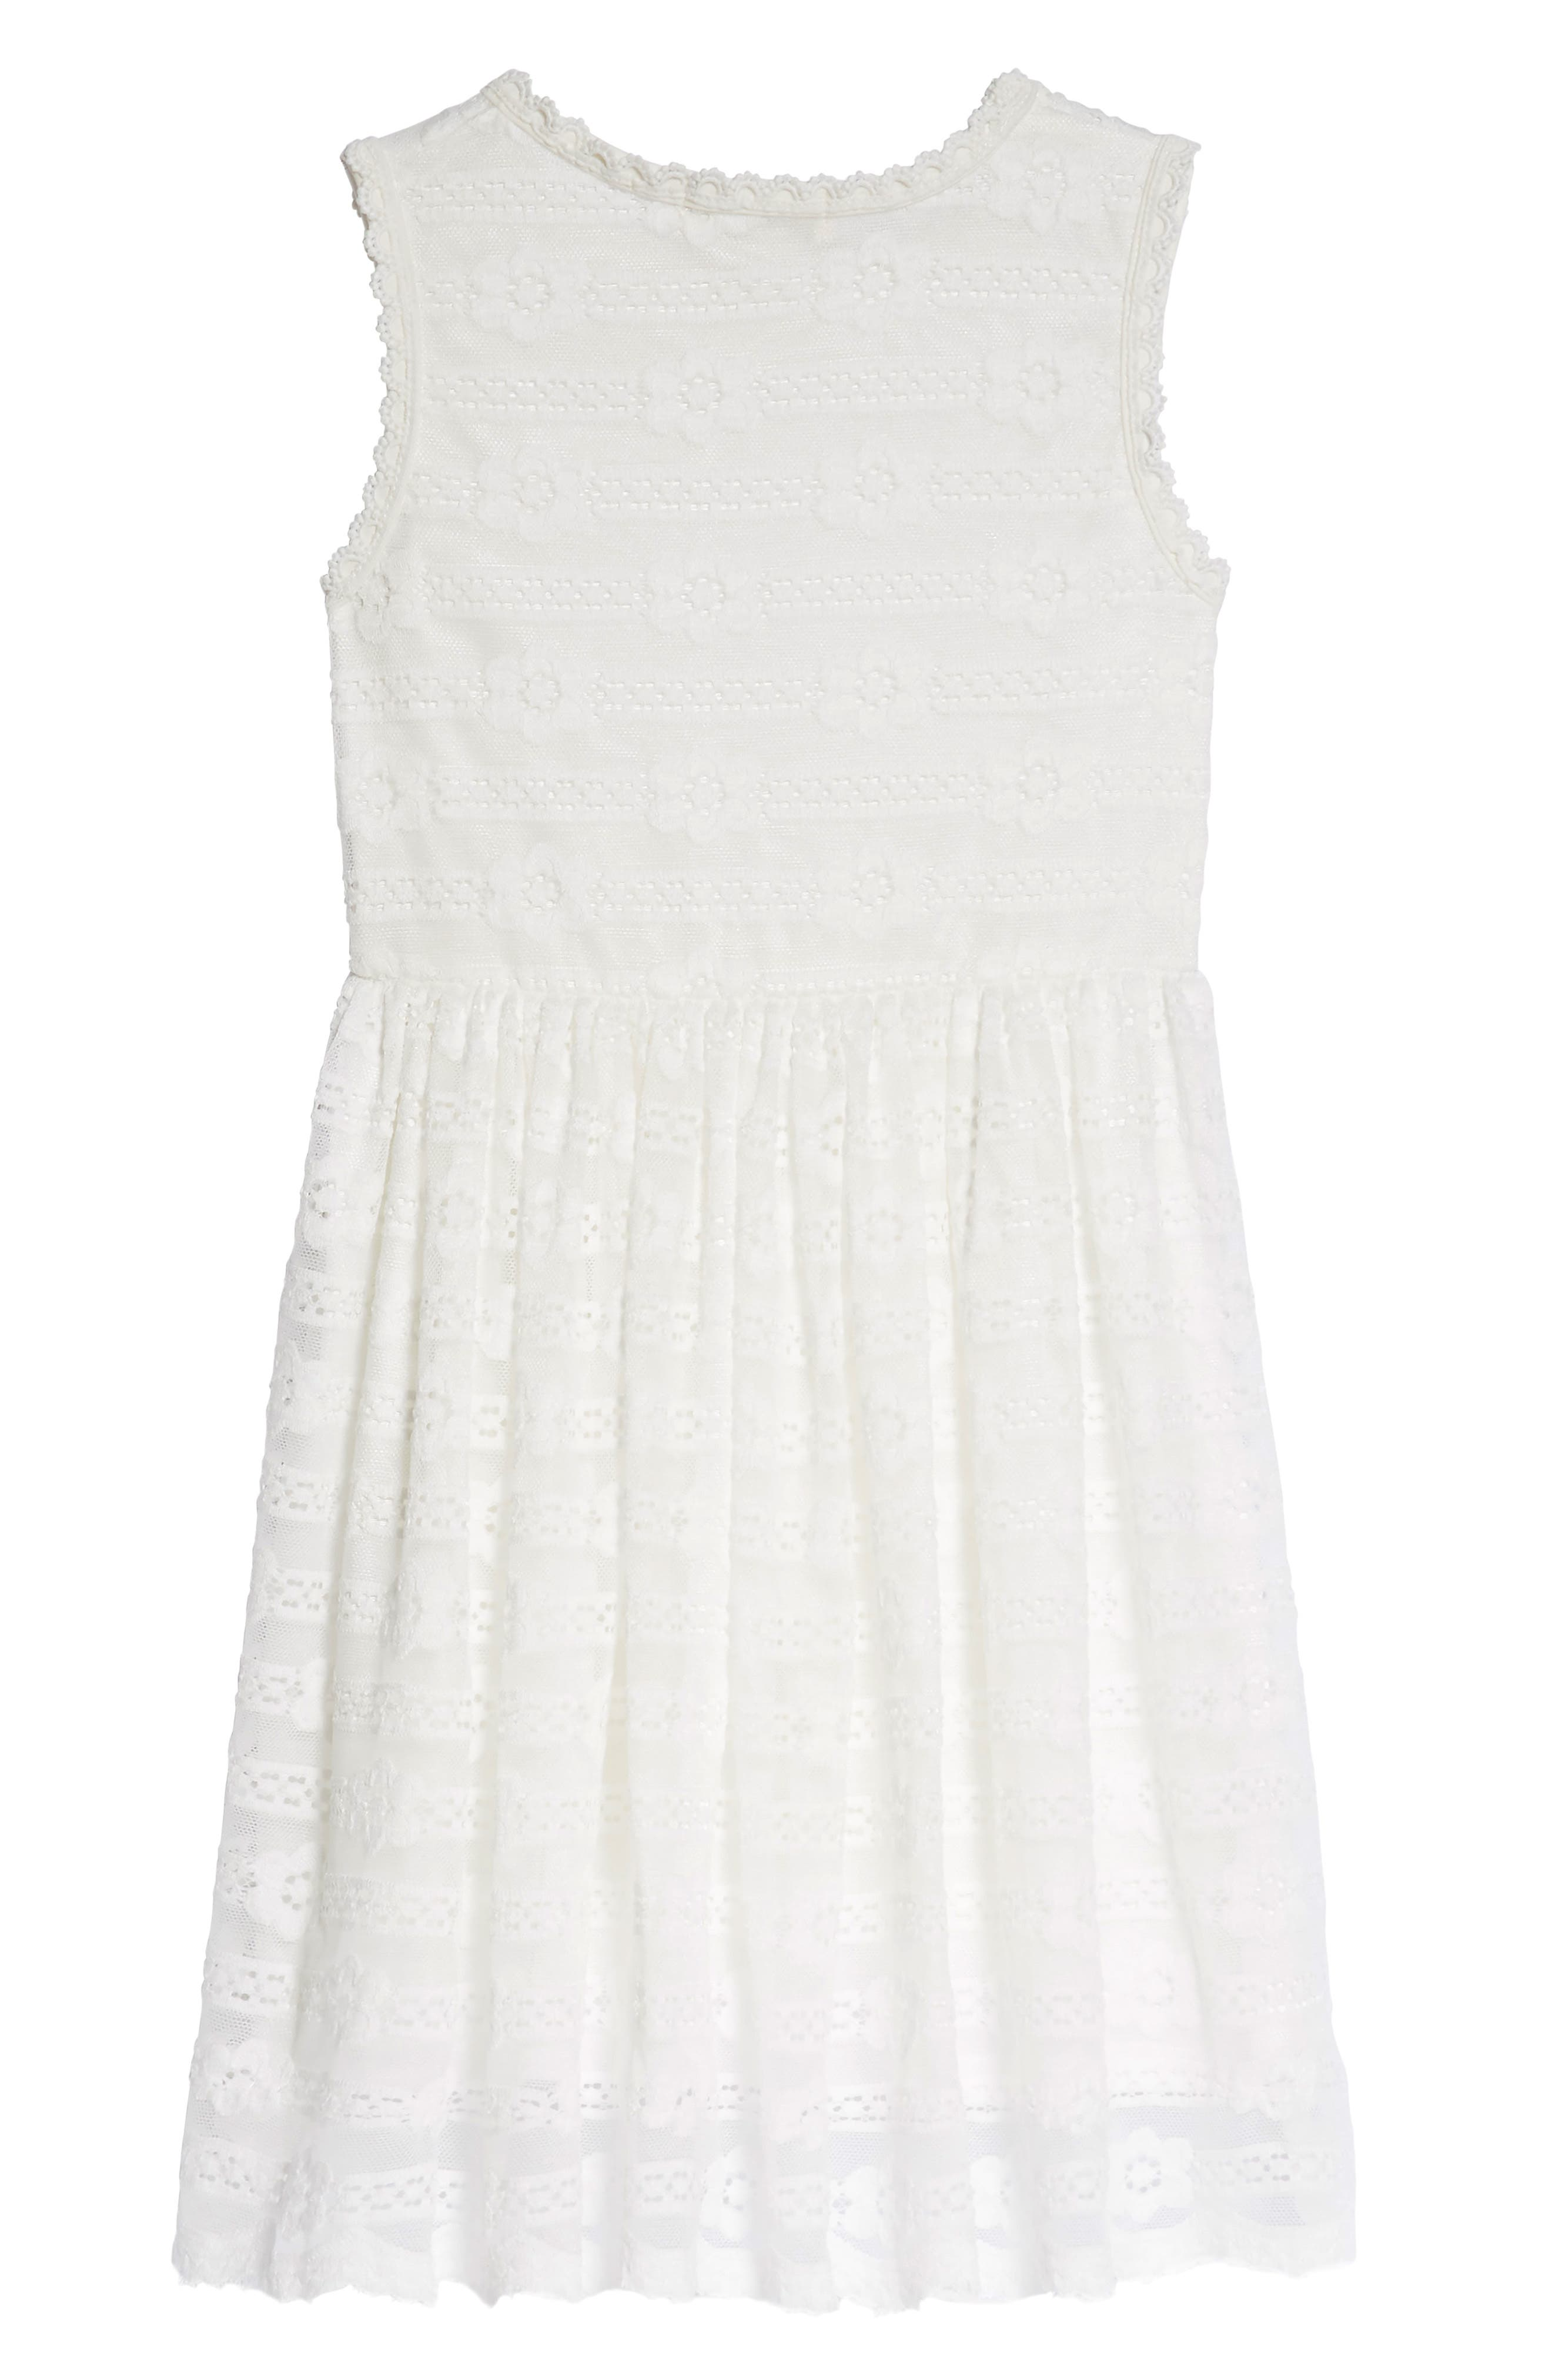 Lace Fit & Flare Dress,                             Alternate thumbnail 2, color,                             White